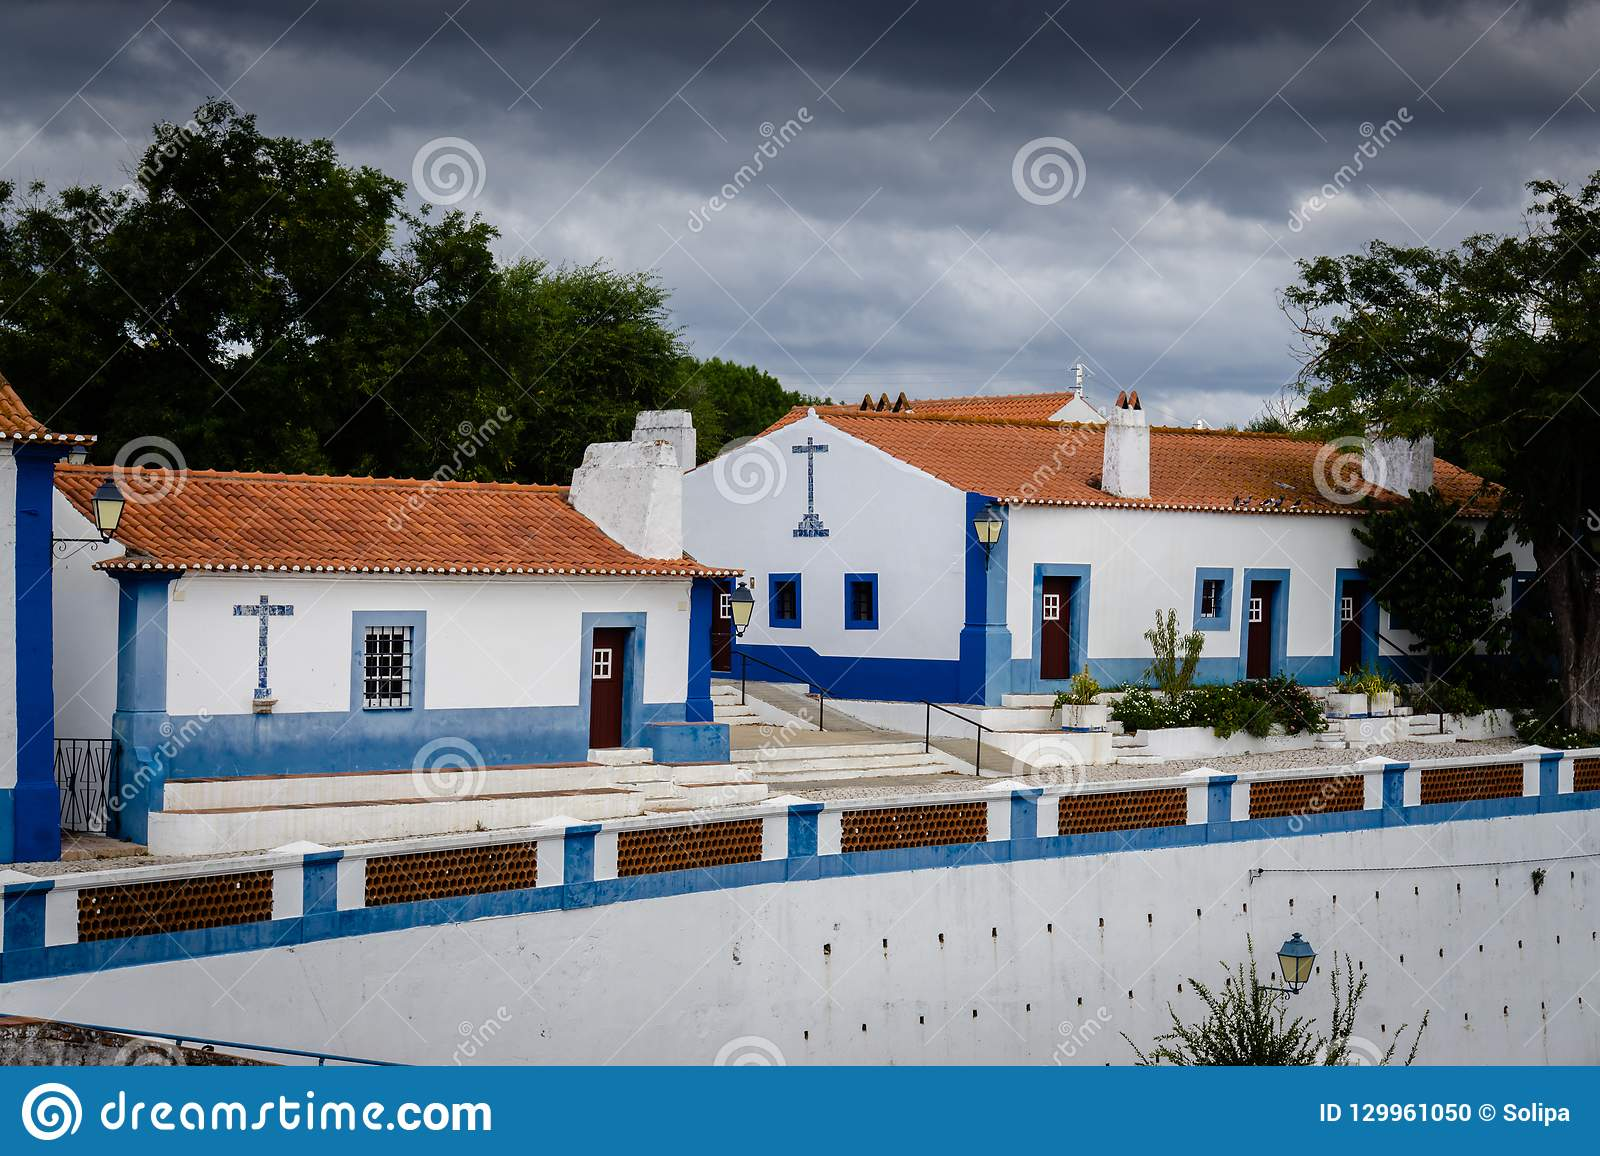 Typical whitewashed terraced cottages in the picturesque historic village of Coruche. Santarem, Ribatejo, Portugal.